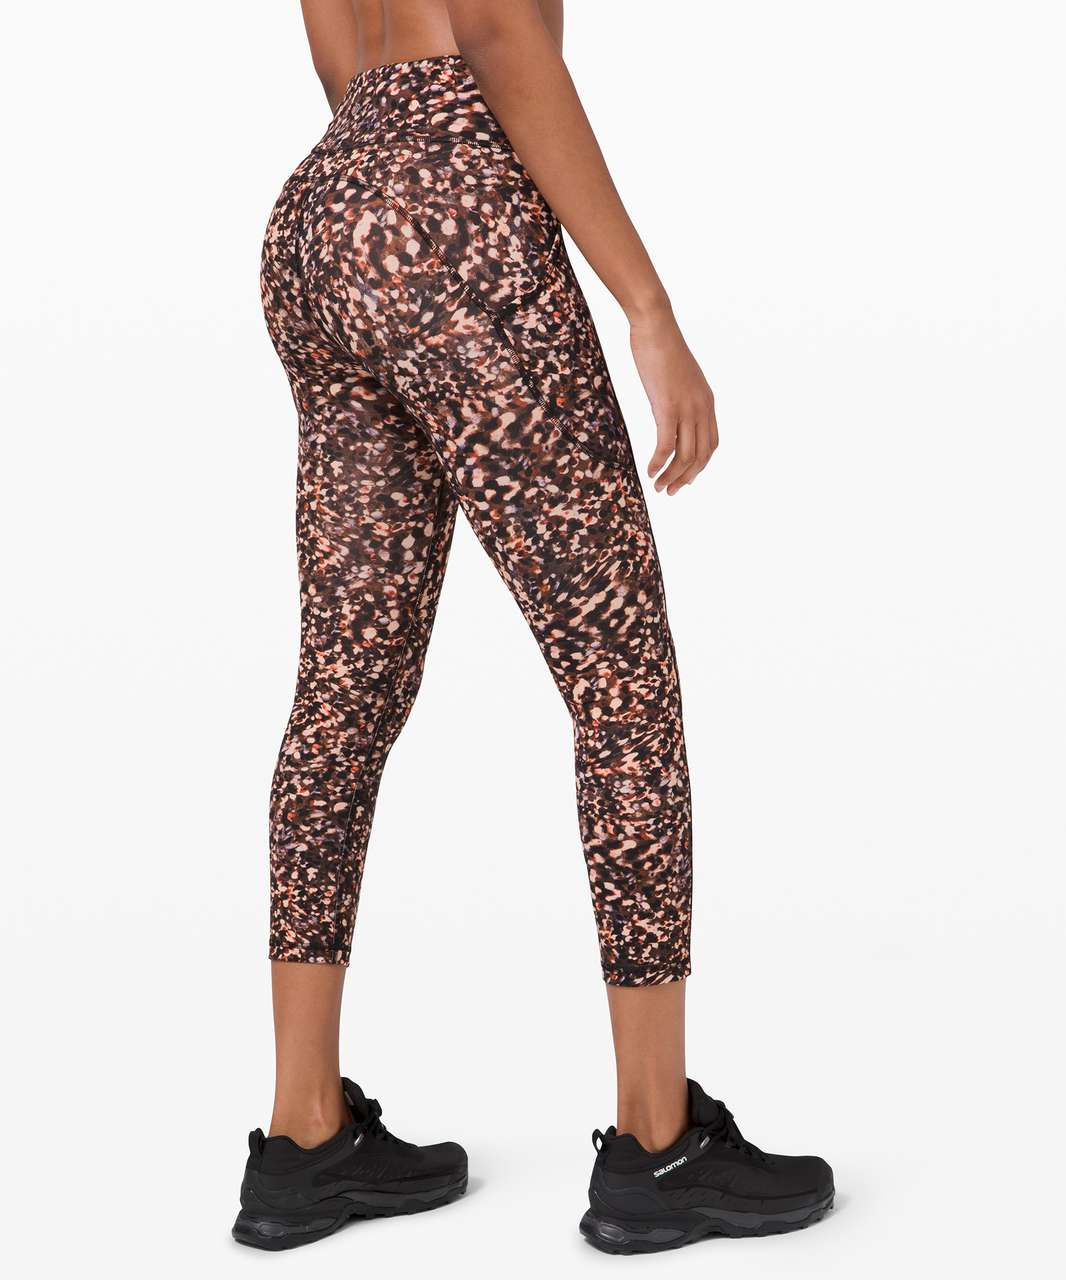 "Lululemon Invigorate High-Rise Crop 23"" - Motion Flux Multi"